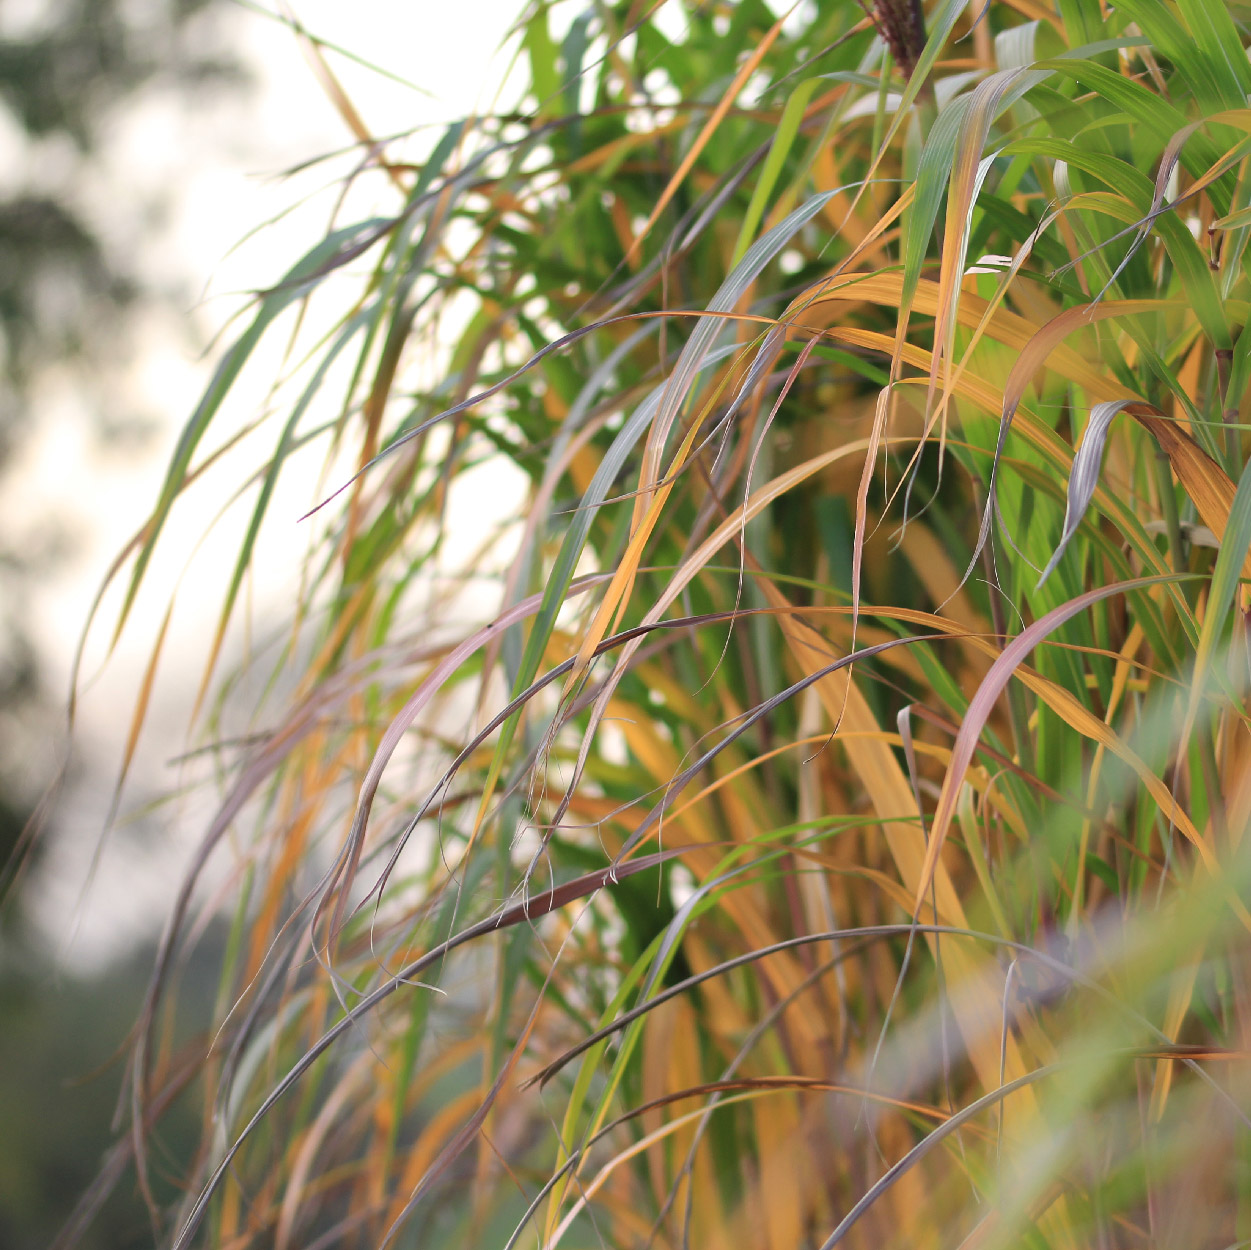 Perennial grass Miscanthus before becoming Miscanthus bedding